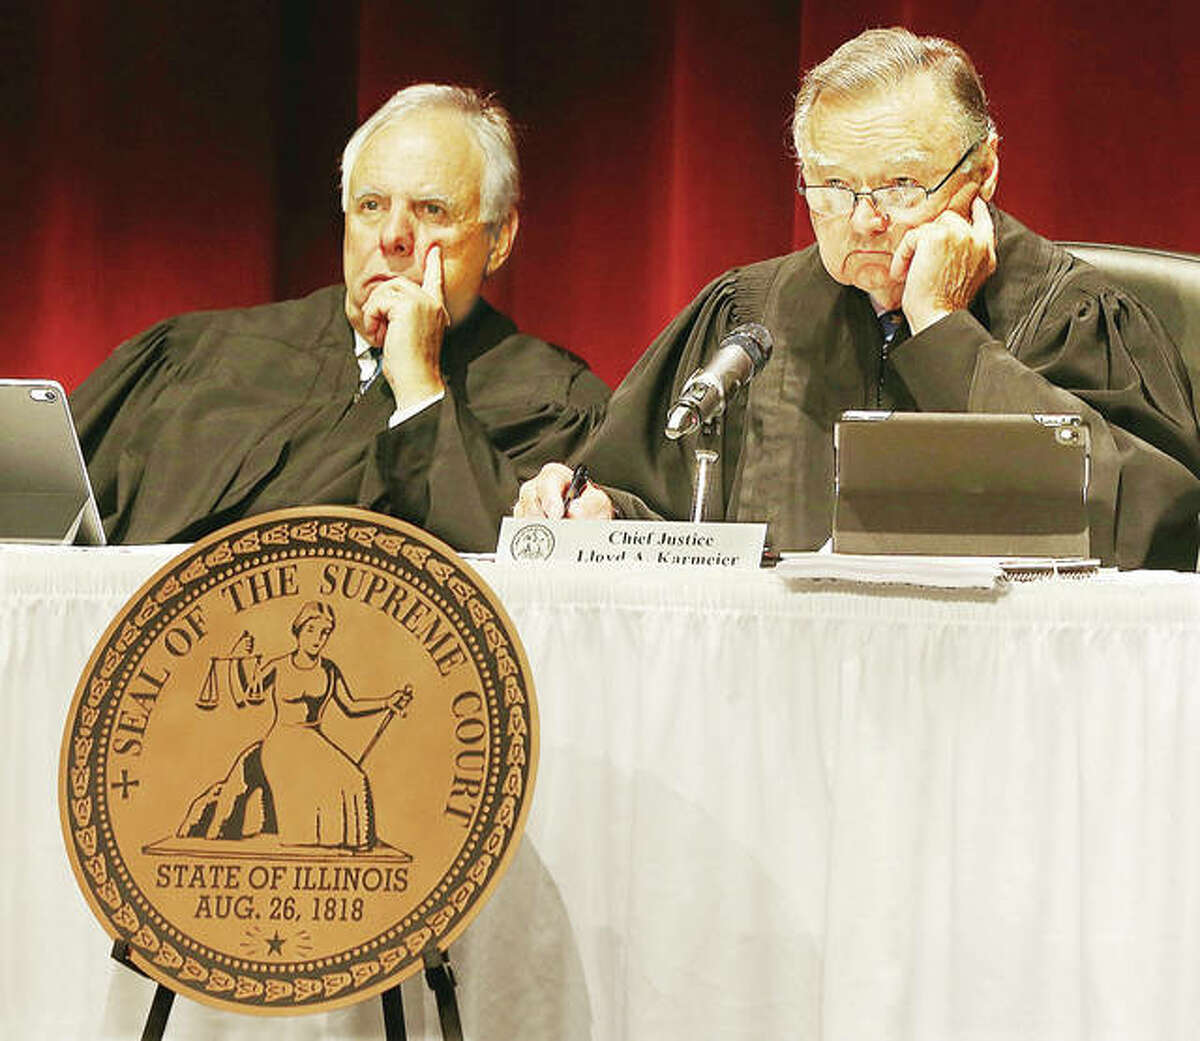 Illinois Supreme Court Chief Justice Lloyd A. Karmeier, right, and Justice Robert R. Thomas, left, listen to oral arguments Sept. 18 in one of two cases before the court during a traveling session held at Hatheway Hall on the campus of Lewis and Clark Community College in Godfrey. Two cases were argued before the court before more than 700 students, politicians, and local attorneys. A question and answer session was held for the parties involved after the court adjourned.